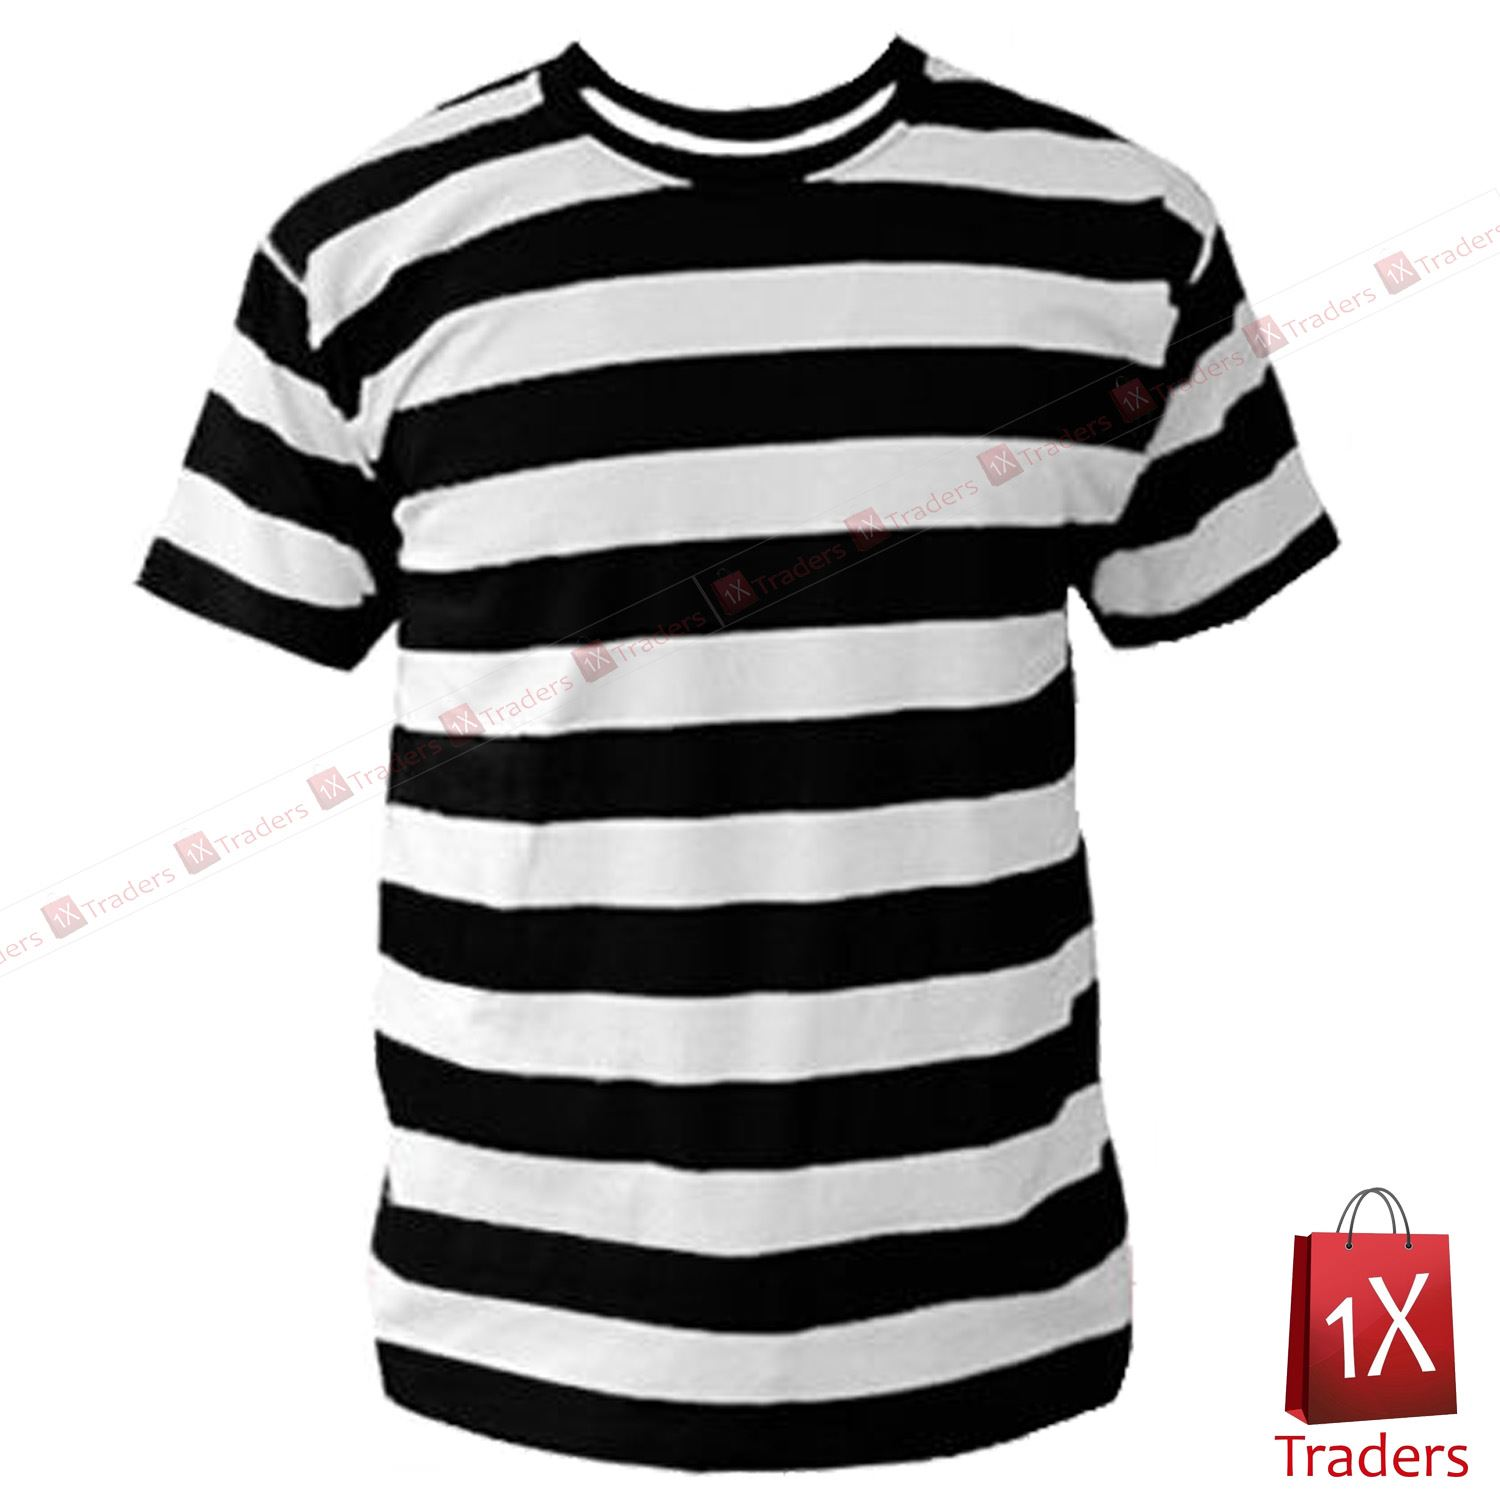 Mens Black And White Striped T Shirt